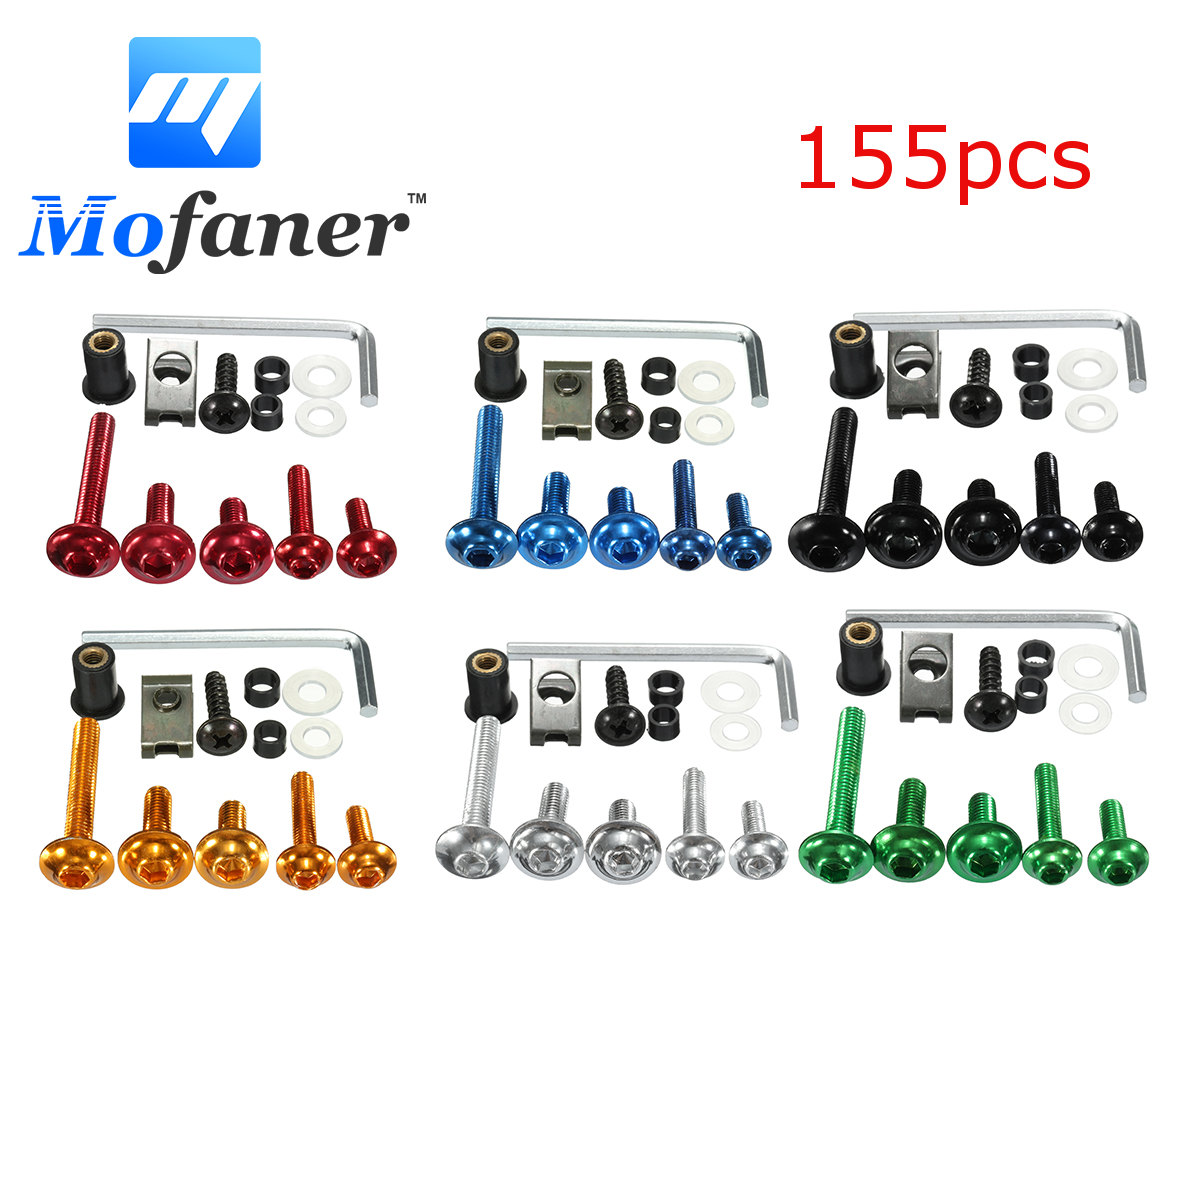 155 Pcs Motorcycle Sportbike Windscreen Fairing Bolts Kit Fastener Clips Screws Black Red Blue Green Silver Gold155 Pcs Motorcycle Sportbike Windscreen Fairing Bolts Kit Fastener Clips Screws Black Red Blue Green Silver Gold